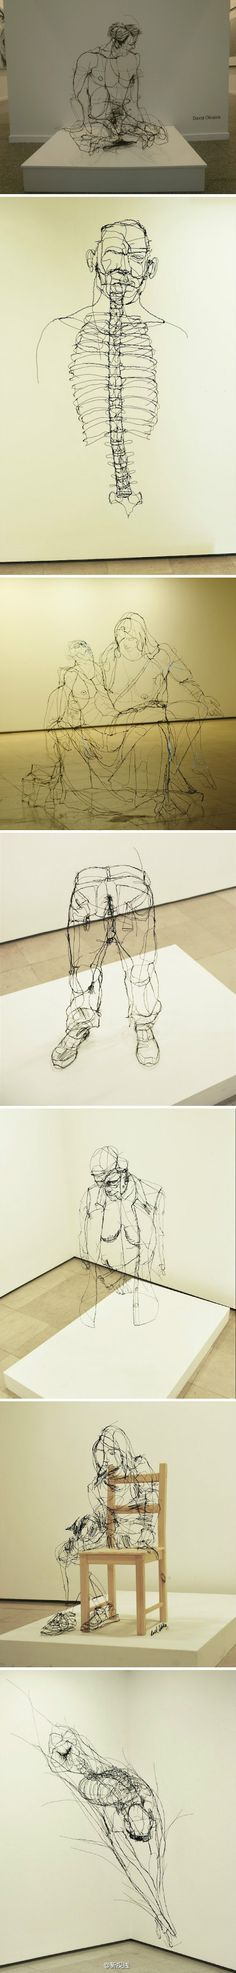 . Beautiful beautiful 3 d life drawings in wire (iron strings) by Portuguese artist David Oliveira